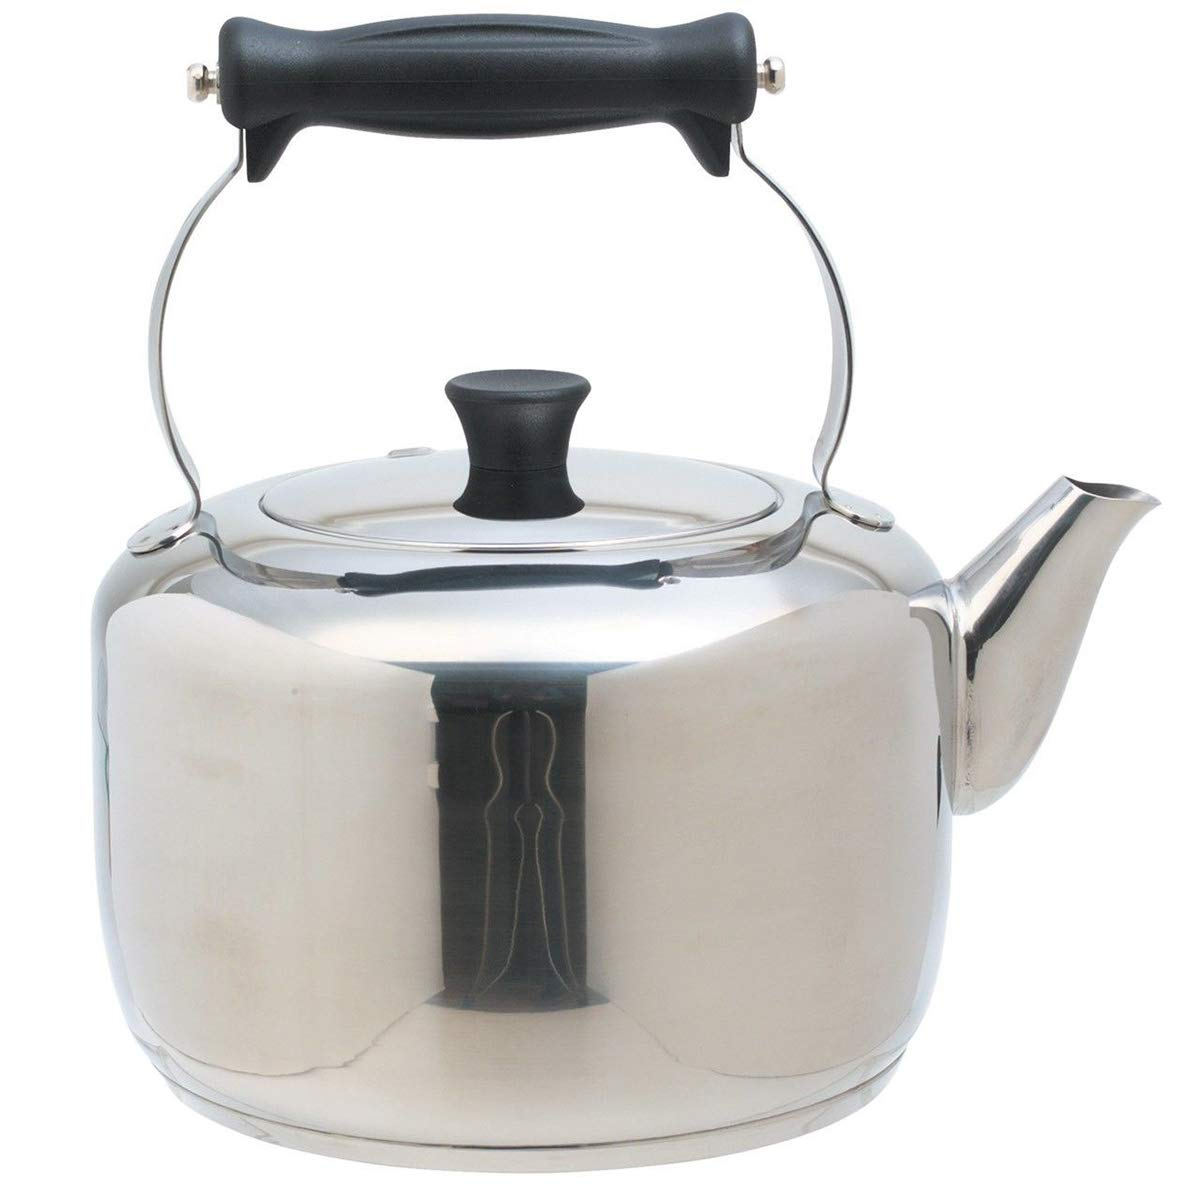 KitchenCraft 2 Litre